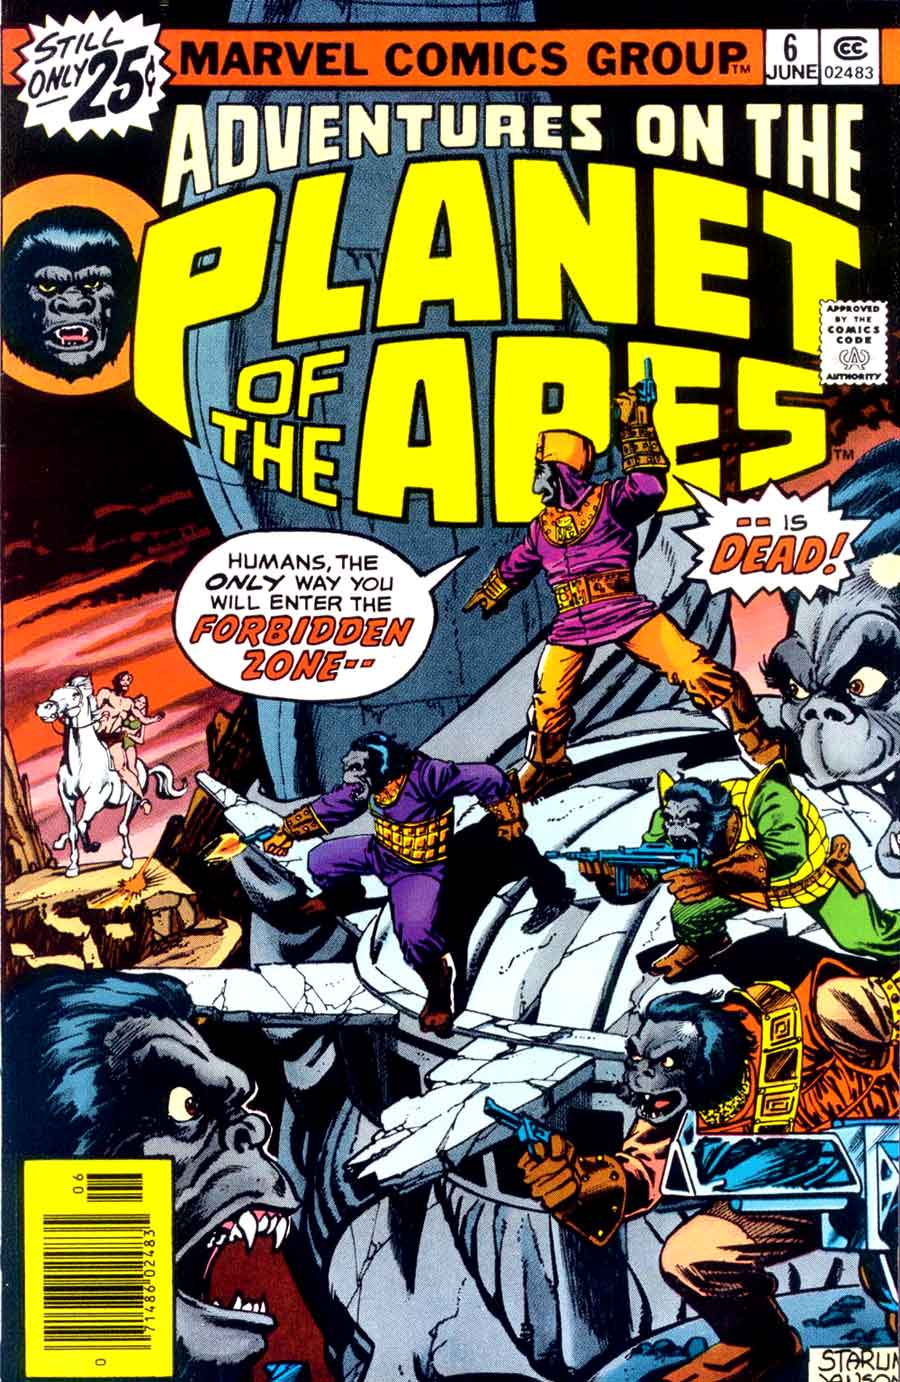 Adventures on the Planet of the Apes #6 marvel 1970s comic book cover by Jim Starlin